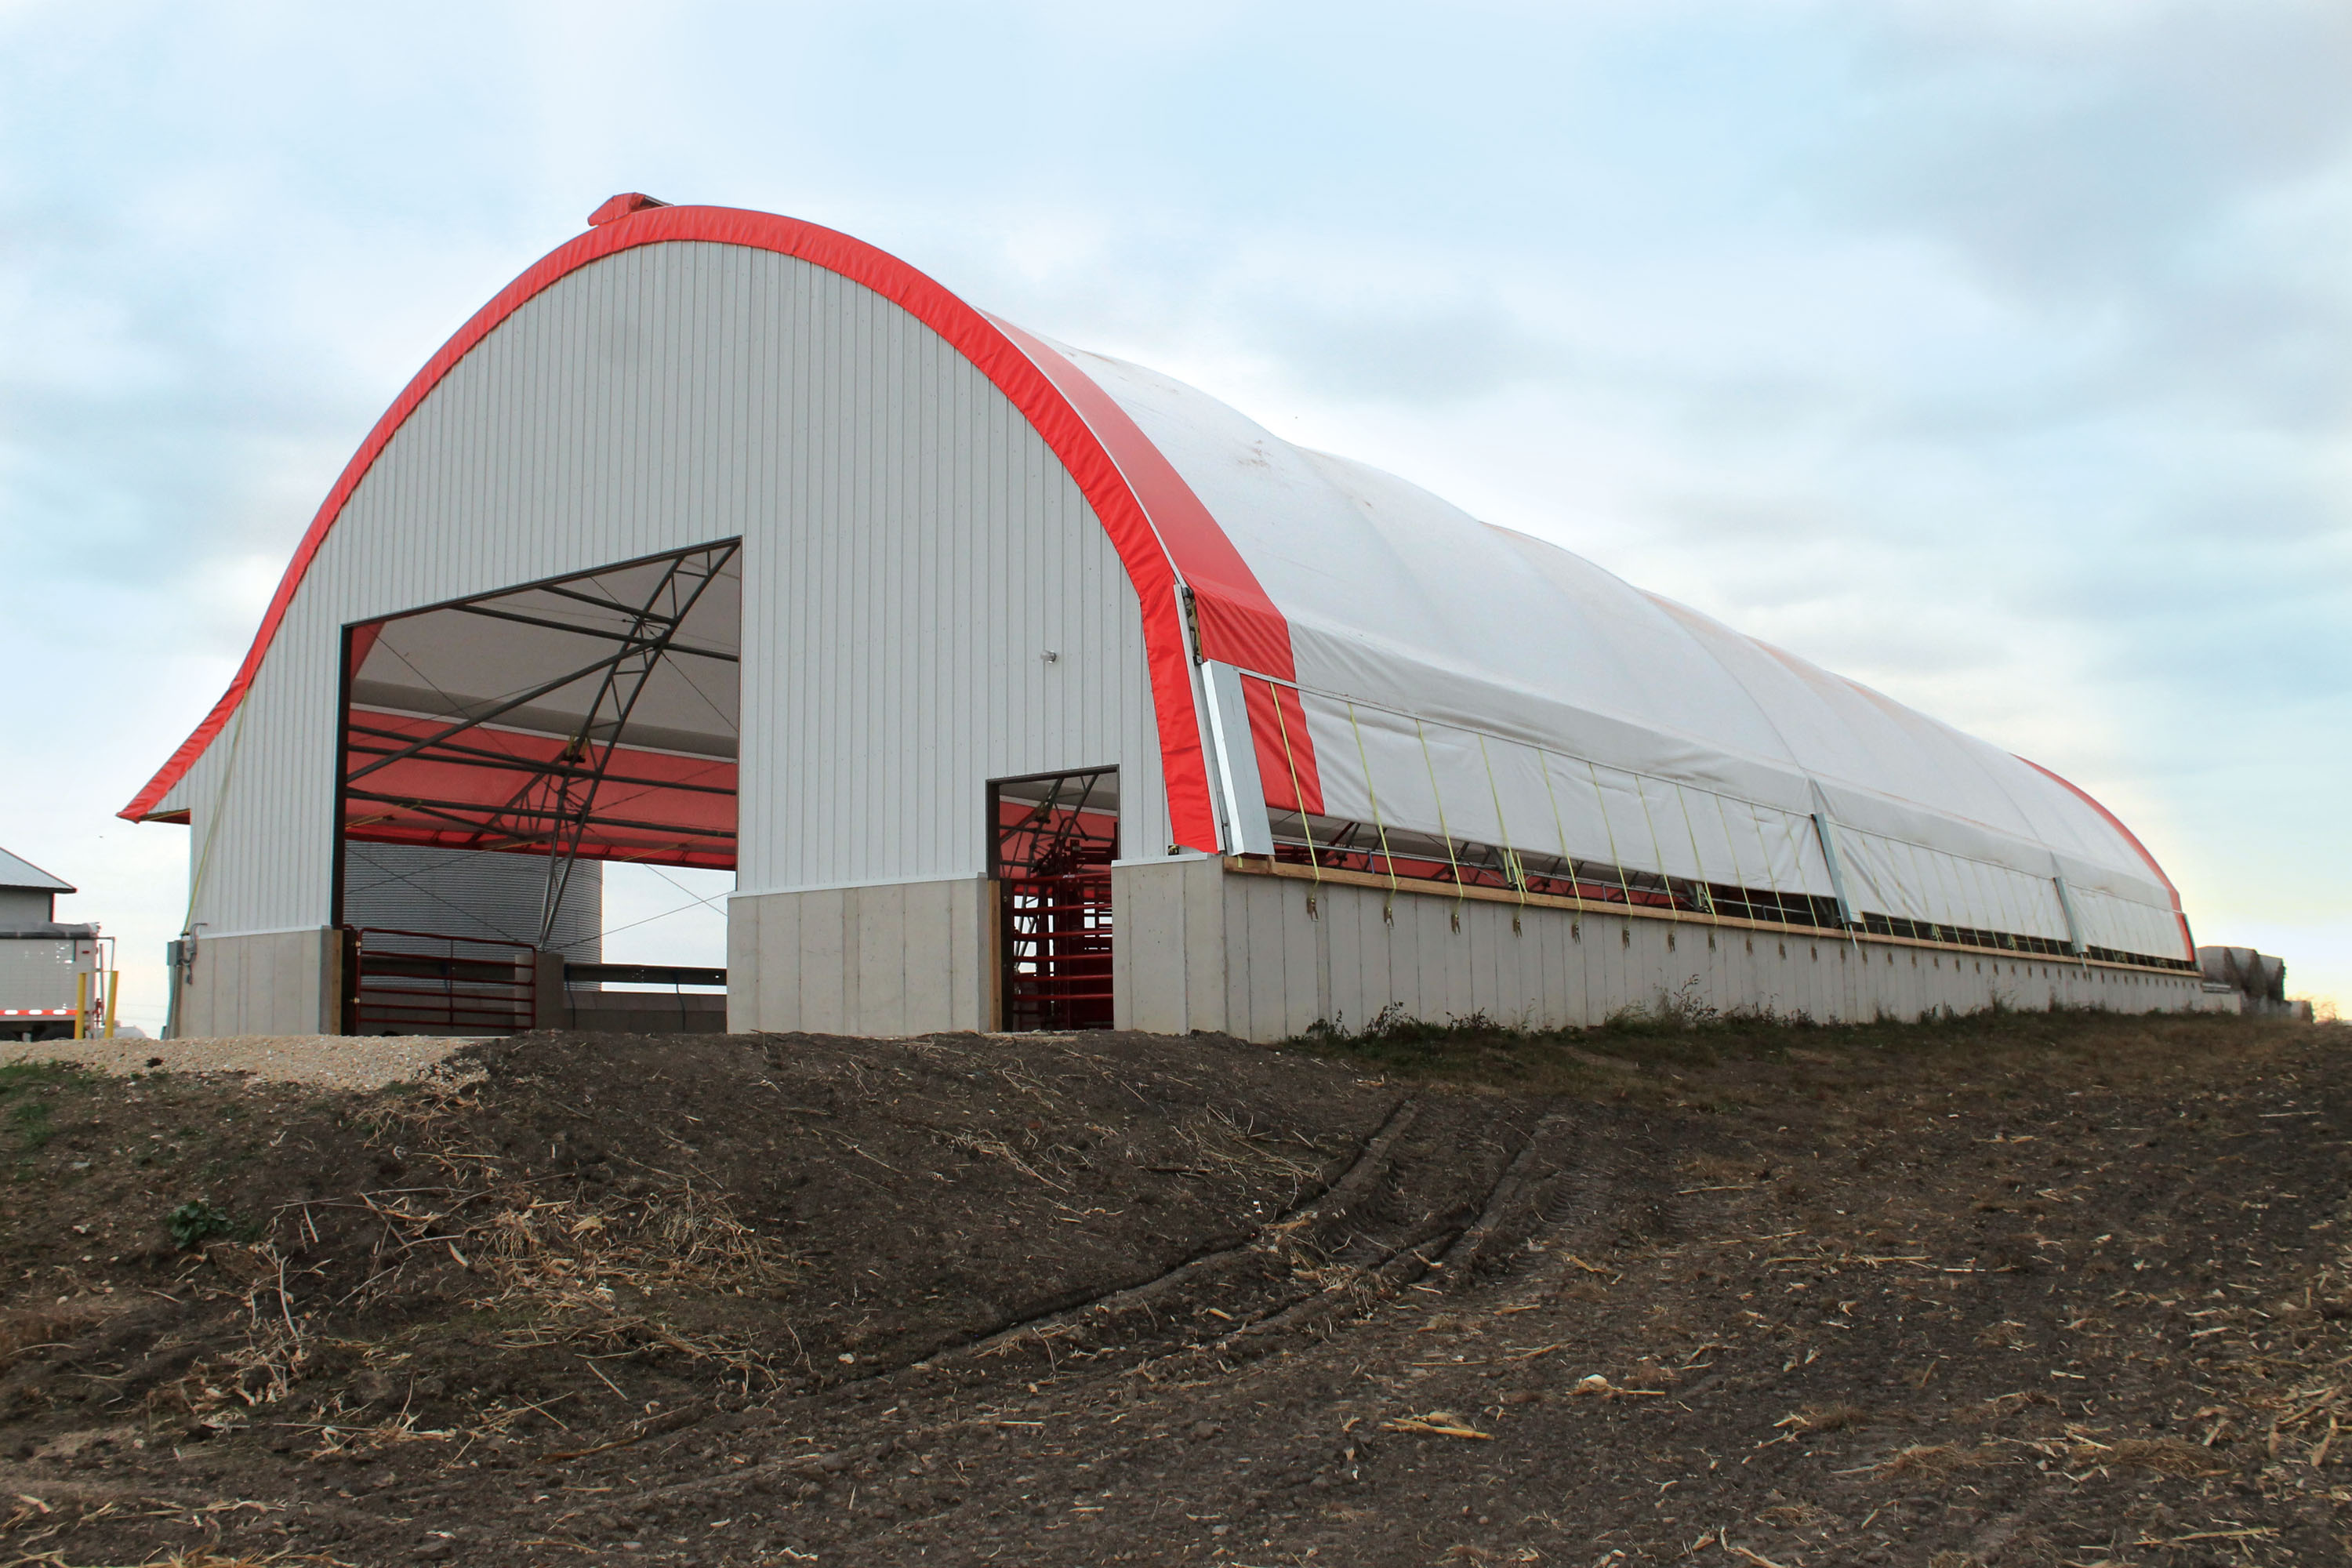 FarmTek @farmtek Your one-stop shop for agricultural, growing and storage needs, featuring animal housing, greenhouses, livestock supplies, heating, ventilation and more.